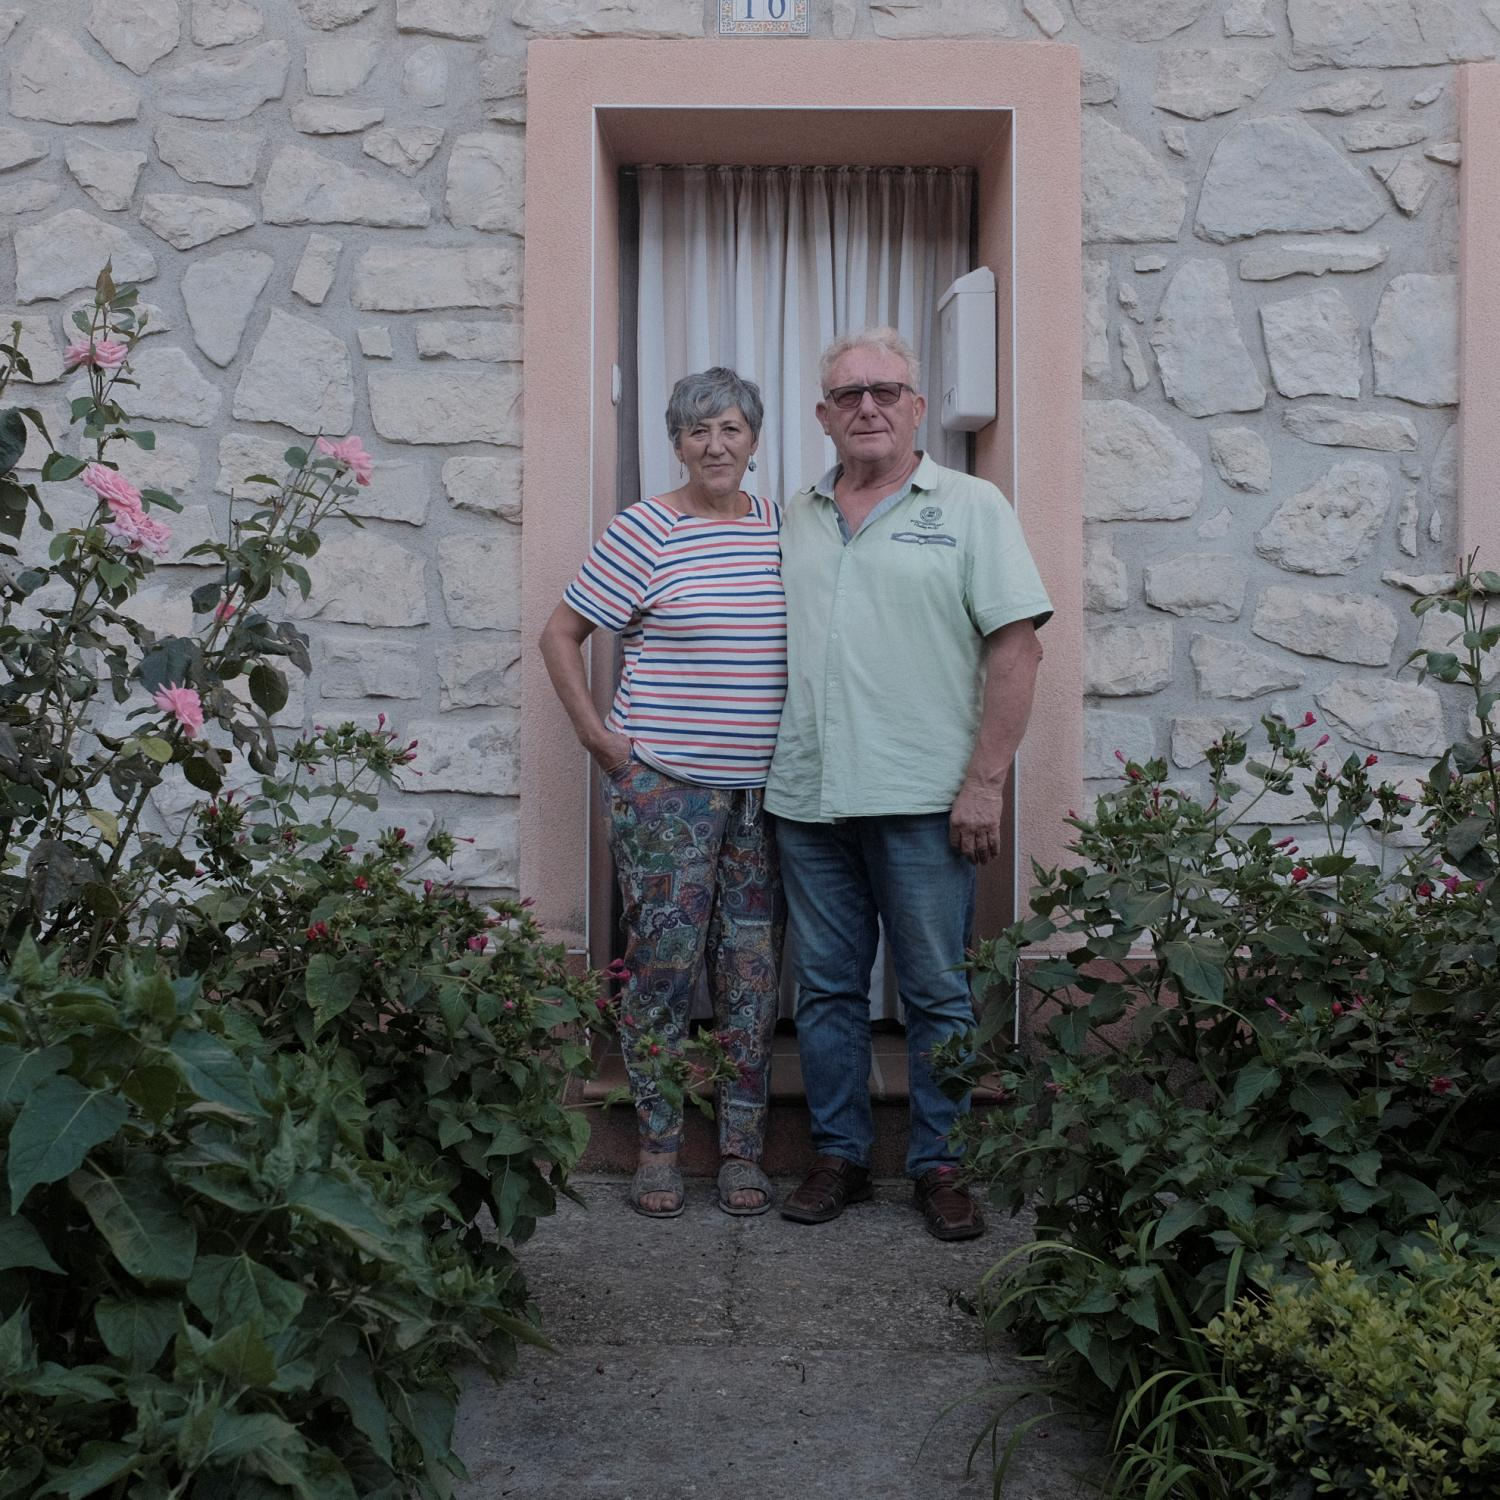 Eduardo Navarro (63) and Virtudes (63) a couple of Bardenas (Zaragoza) a settlers town builded in 1957 in the door of their house. After the Spanish civil war in 1936, under Francisco Franco�s dictatorship, an agriculture reform was enforced leading to the building of more than 300 new towns all around Spain. This towns were populated with people coming from other rural impoverished areas but most of them are in high risk of disappearing because the new generations are moving to cities and abandoning these areas. Copyright: Spanish photojournalist Andoni Lubaki.